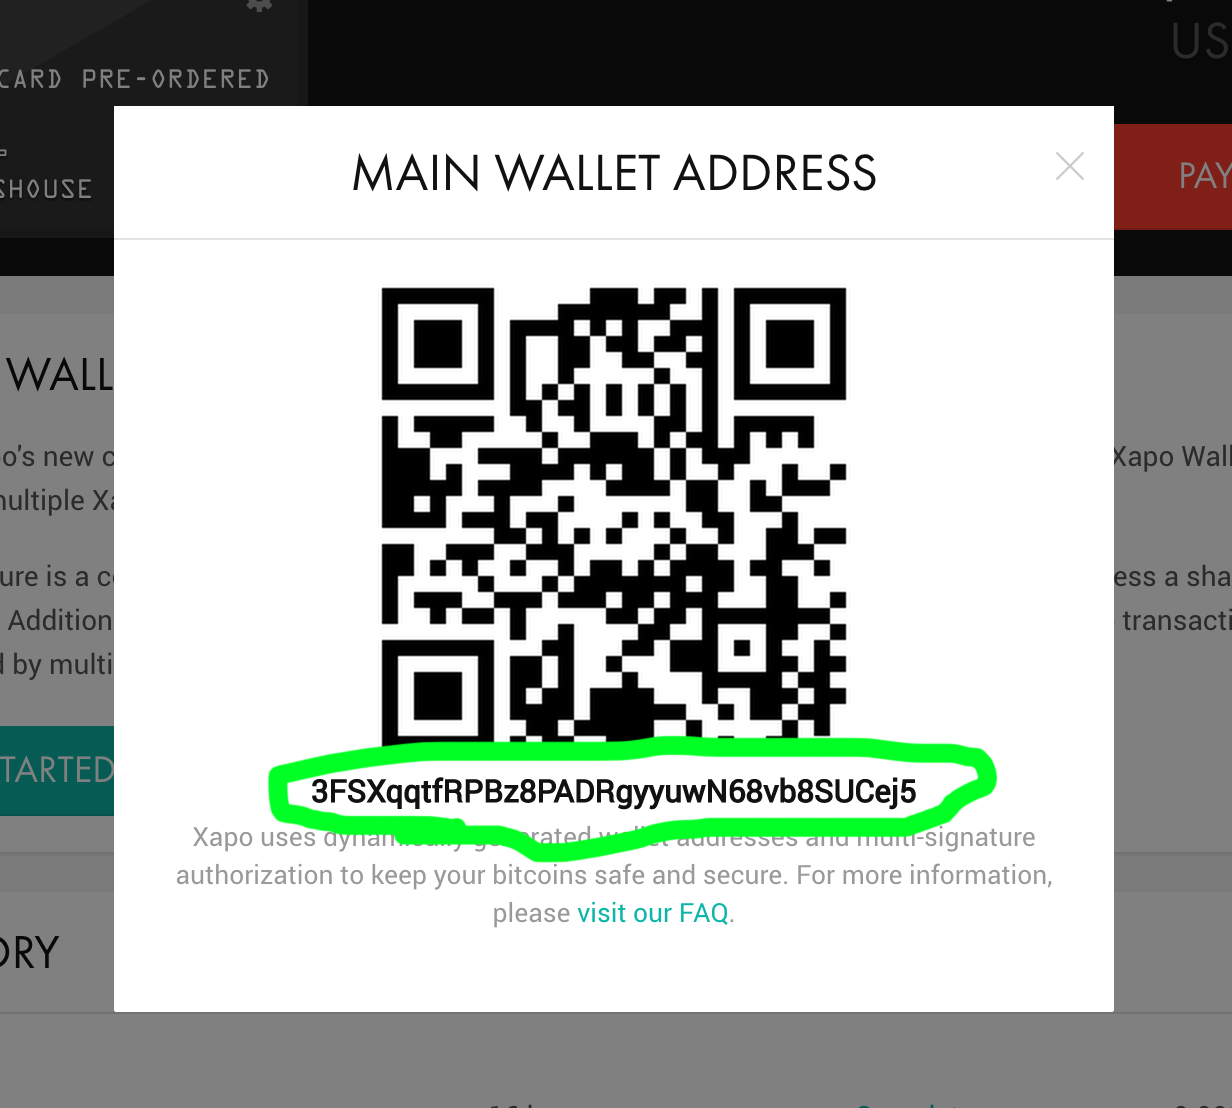 Xapo wallet address pandora one annual how to create a bitcoin wallet you can get your bitcoin address by clicking on my address the xapo wallet bitcoin address is dynamic xapo mobile app ccuart Images